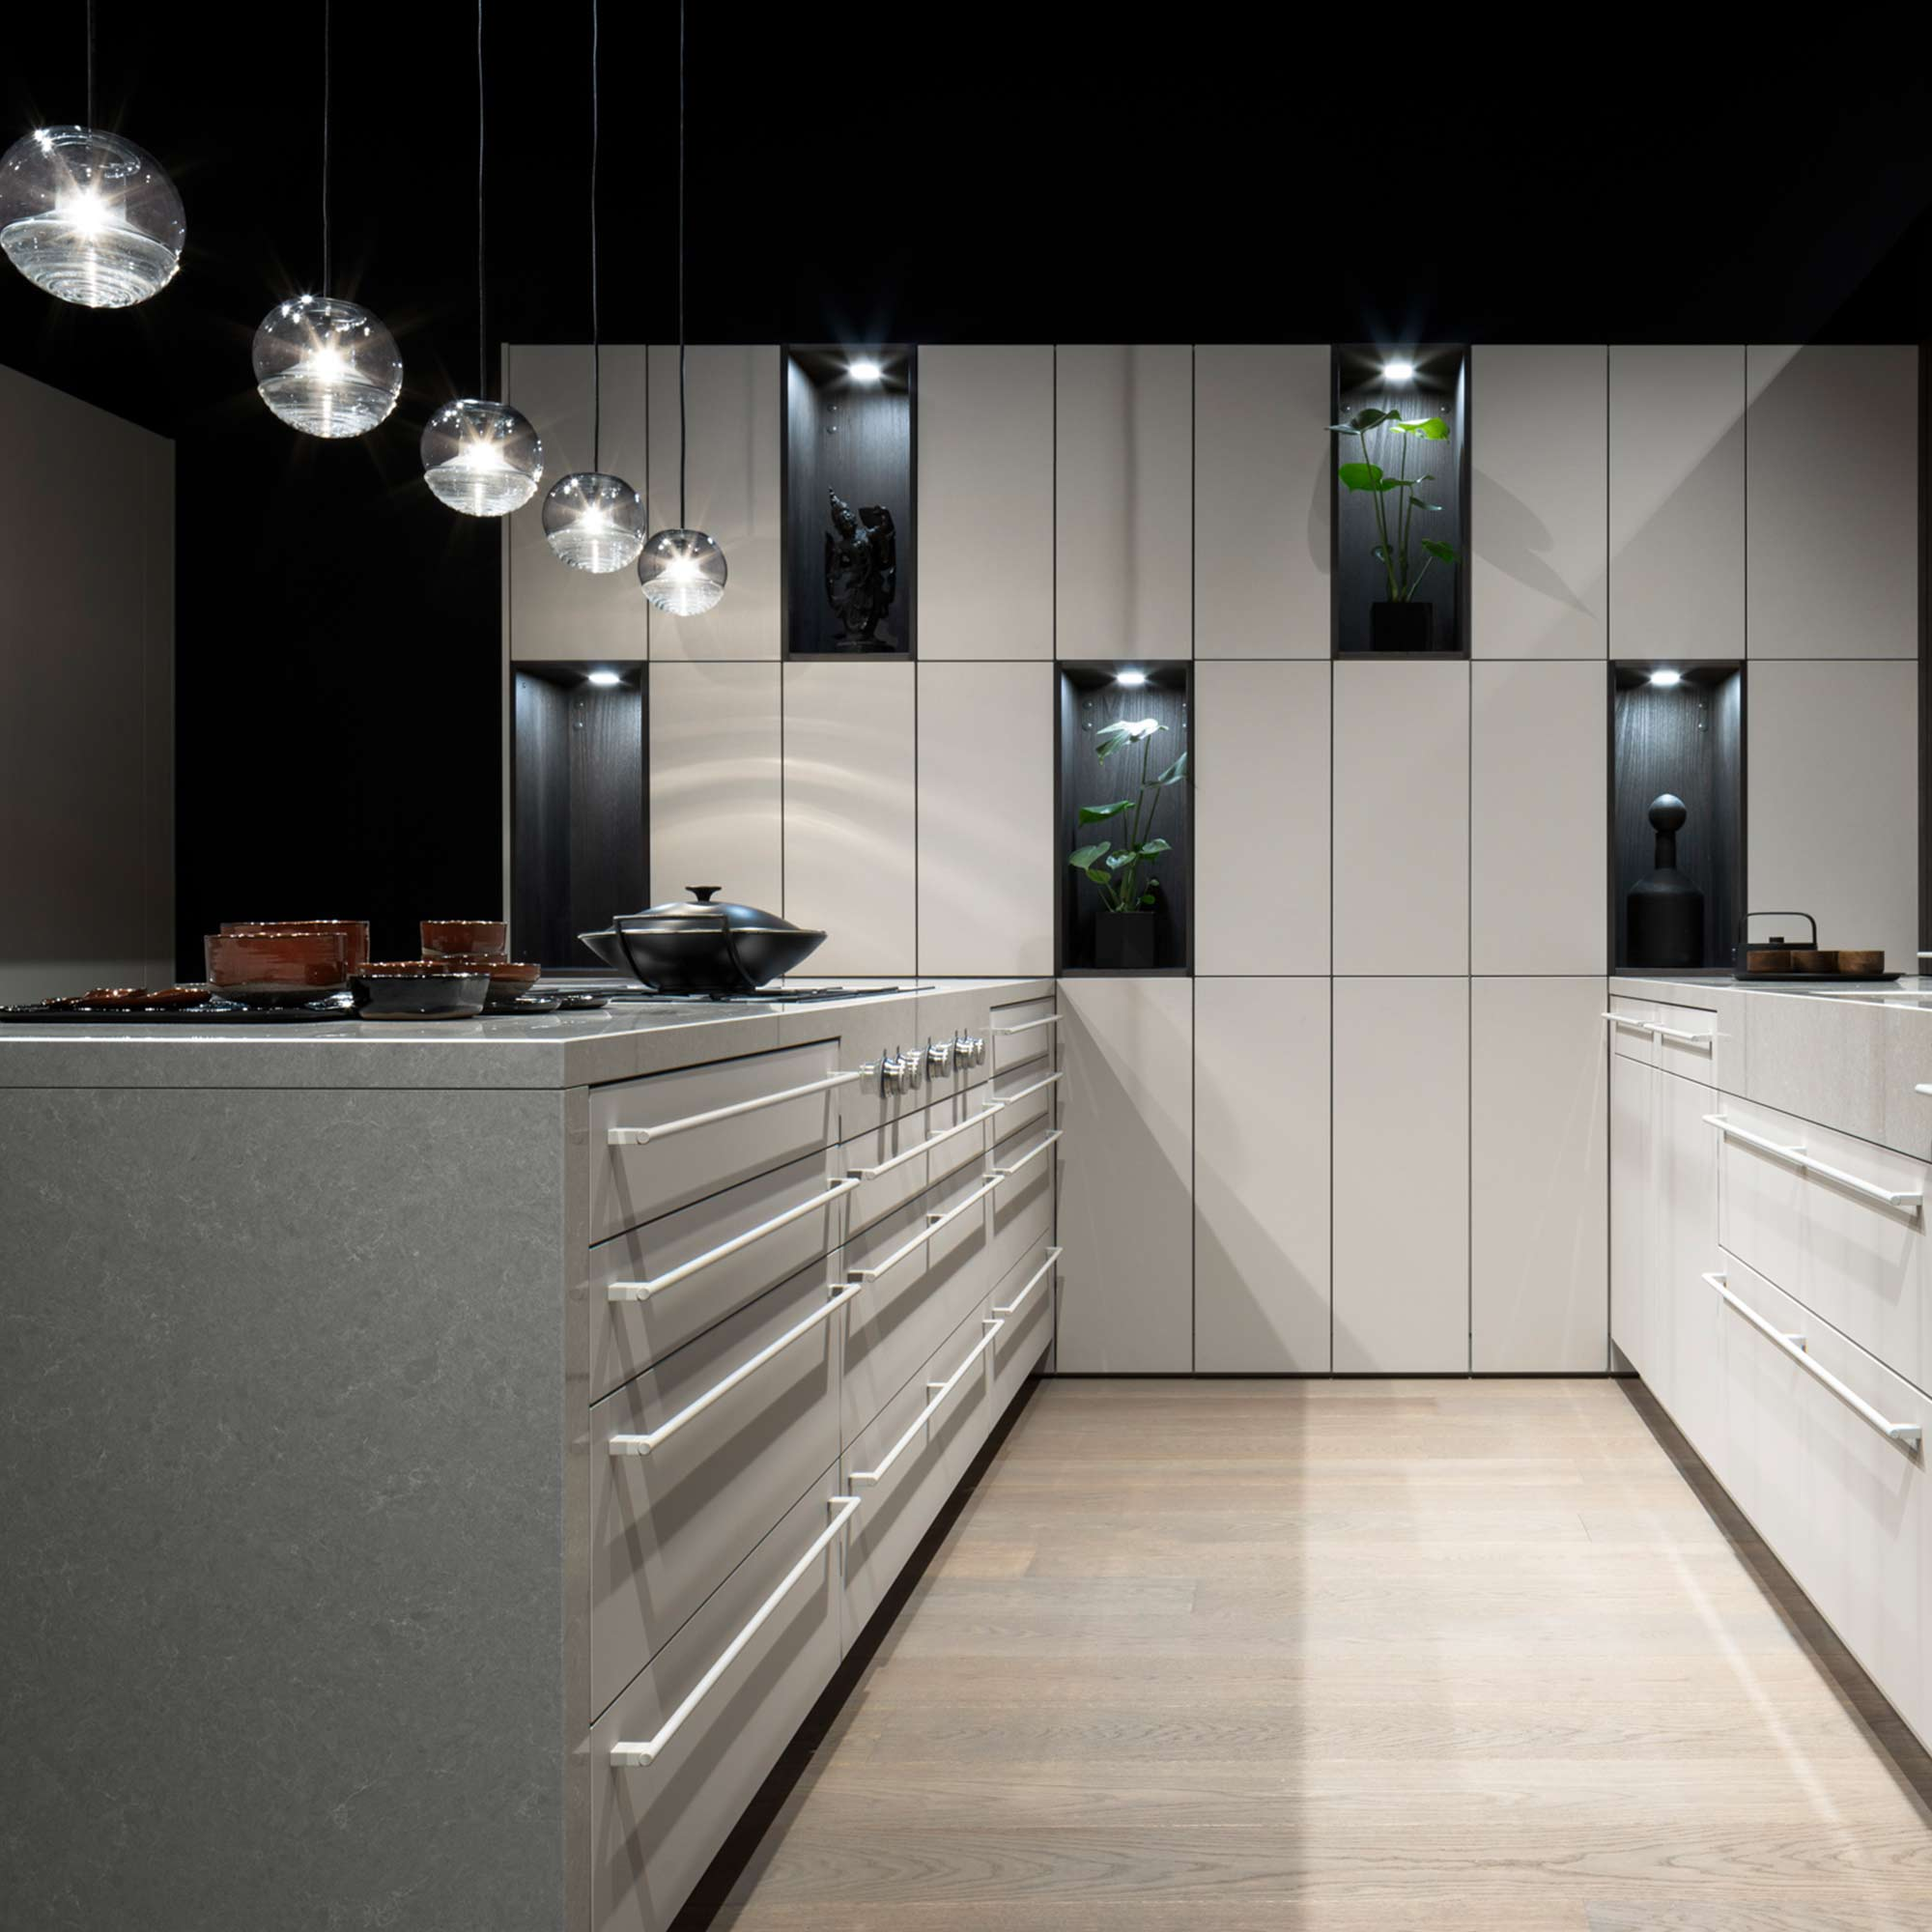 Space-saving kitchen design for modern homes by Hubble